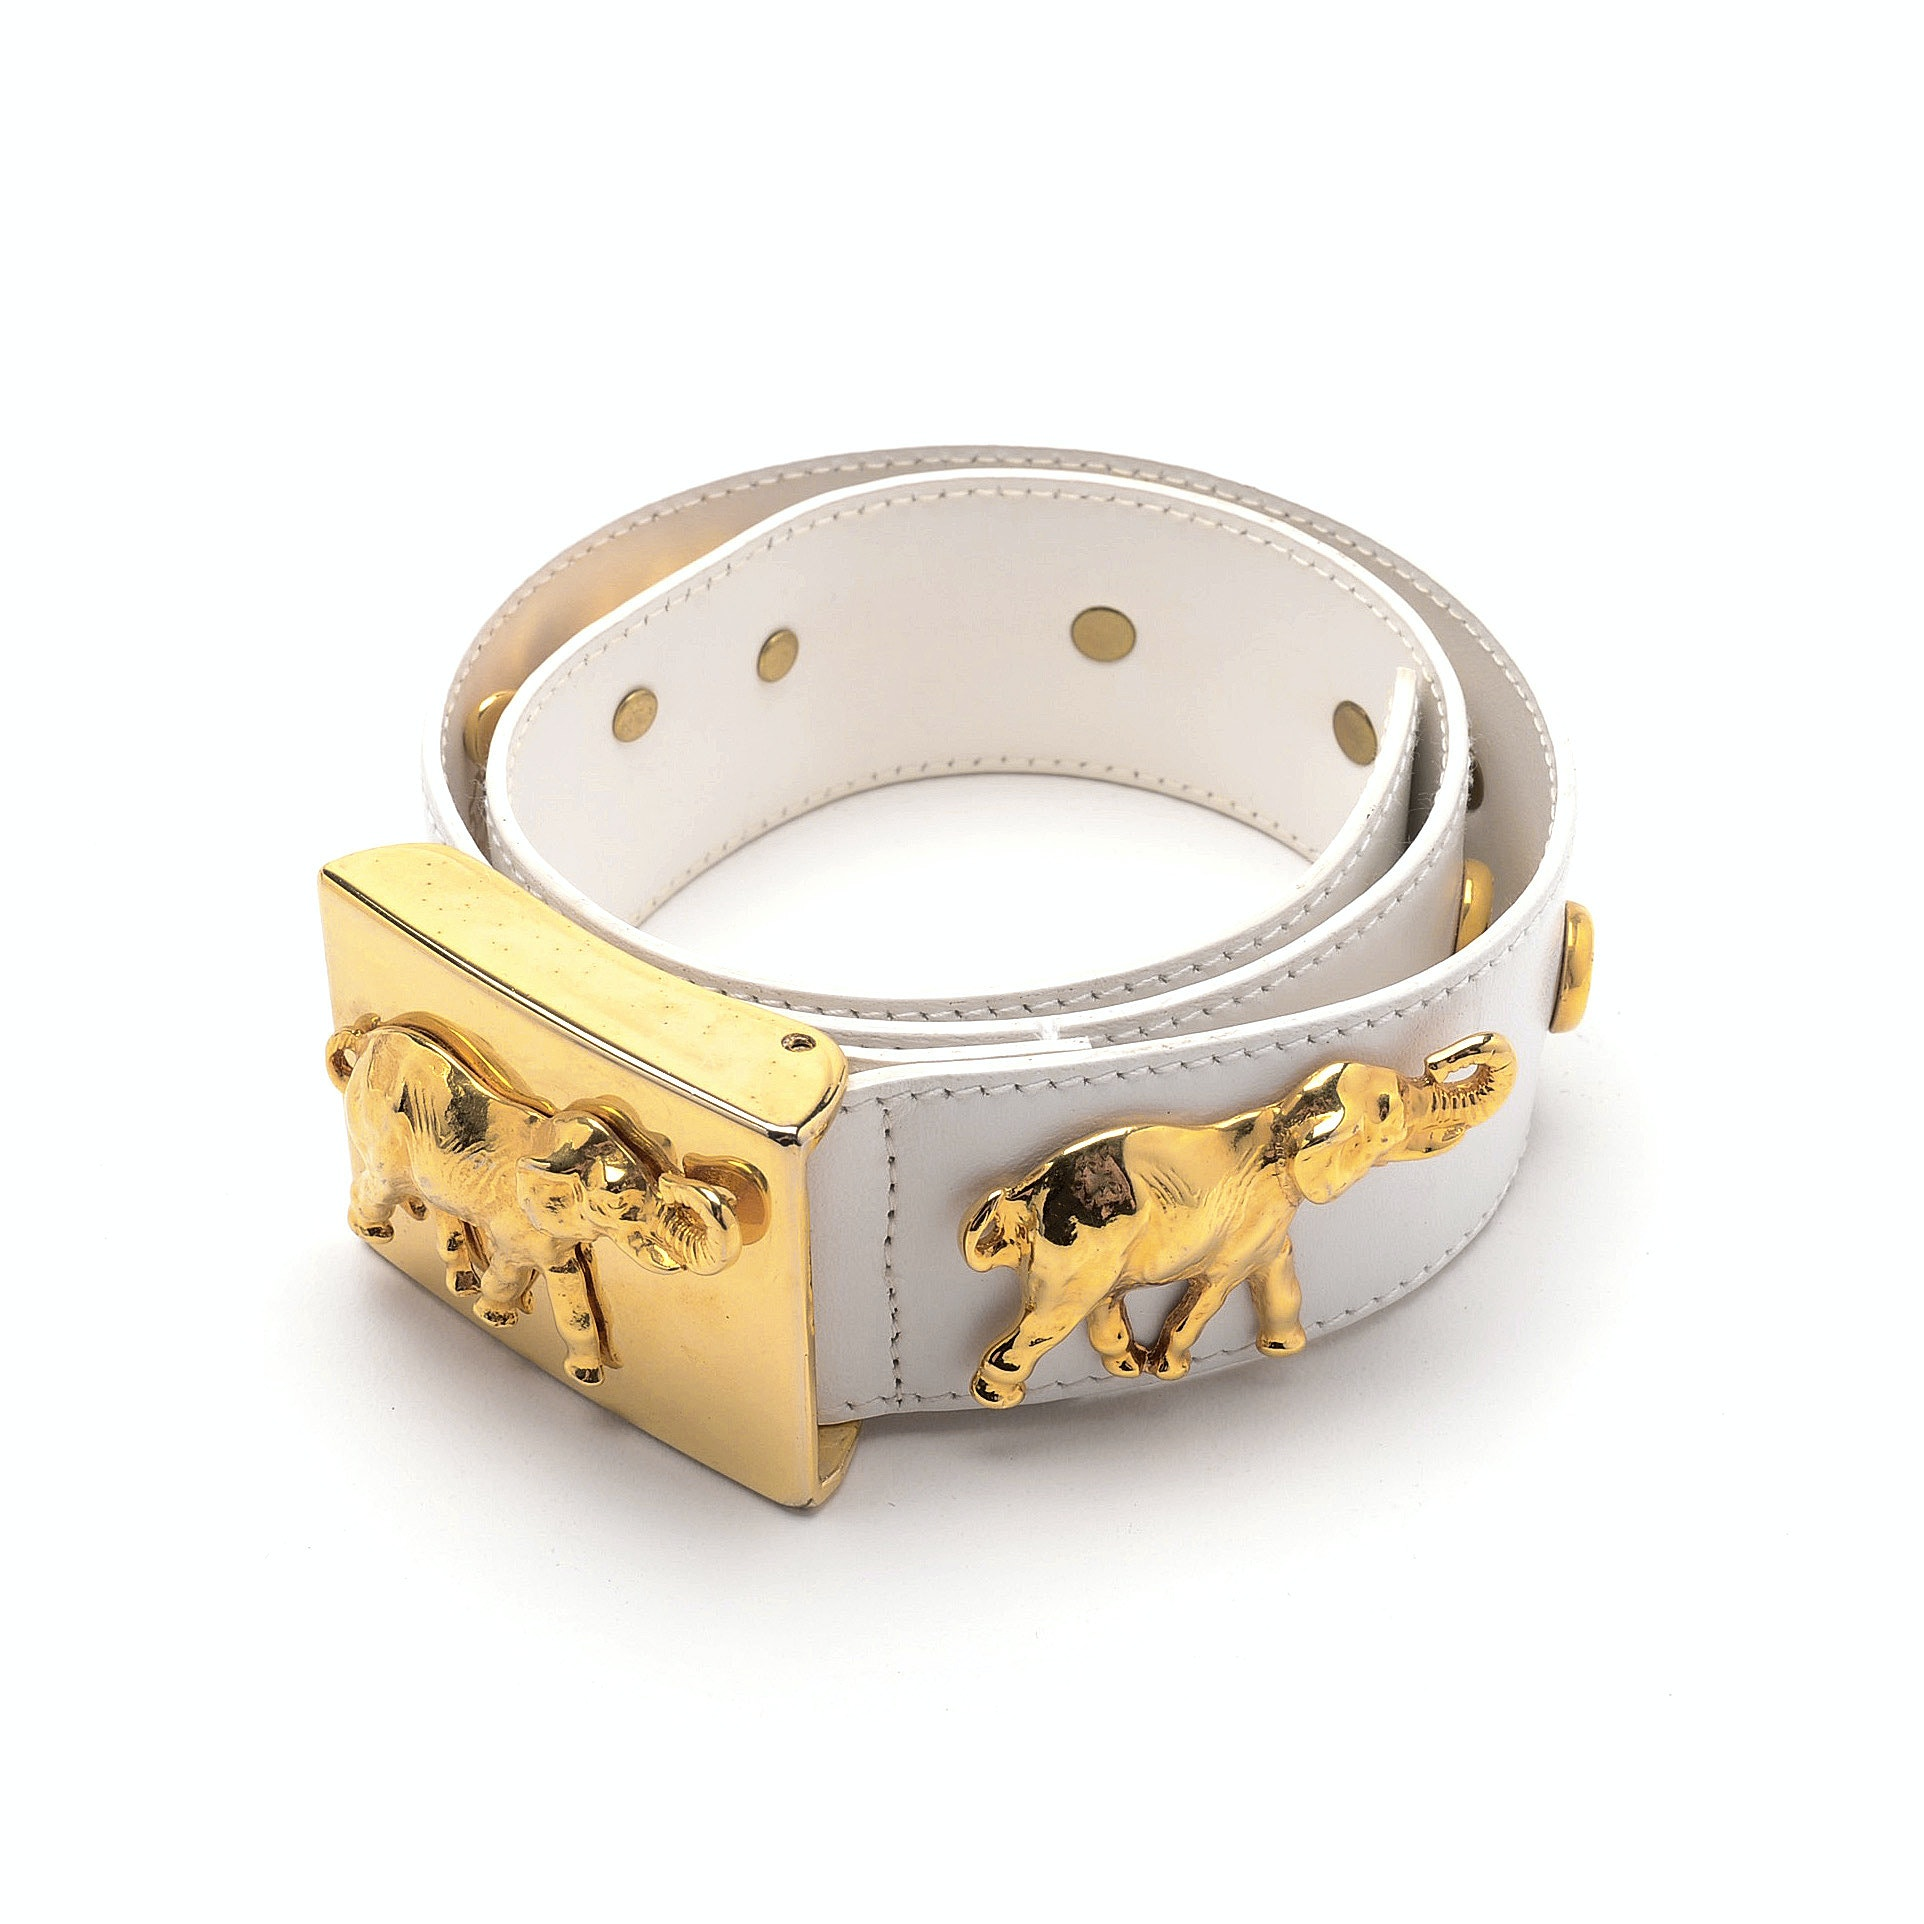 Escada White Leather Belt in an Elephant Motif with Faux Pearl Medallions in High Polish Goldtone Finish